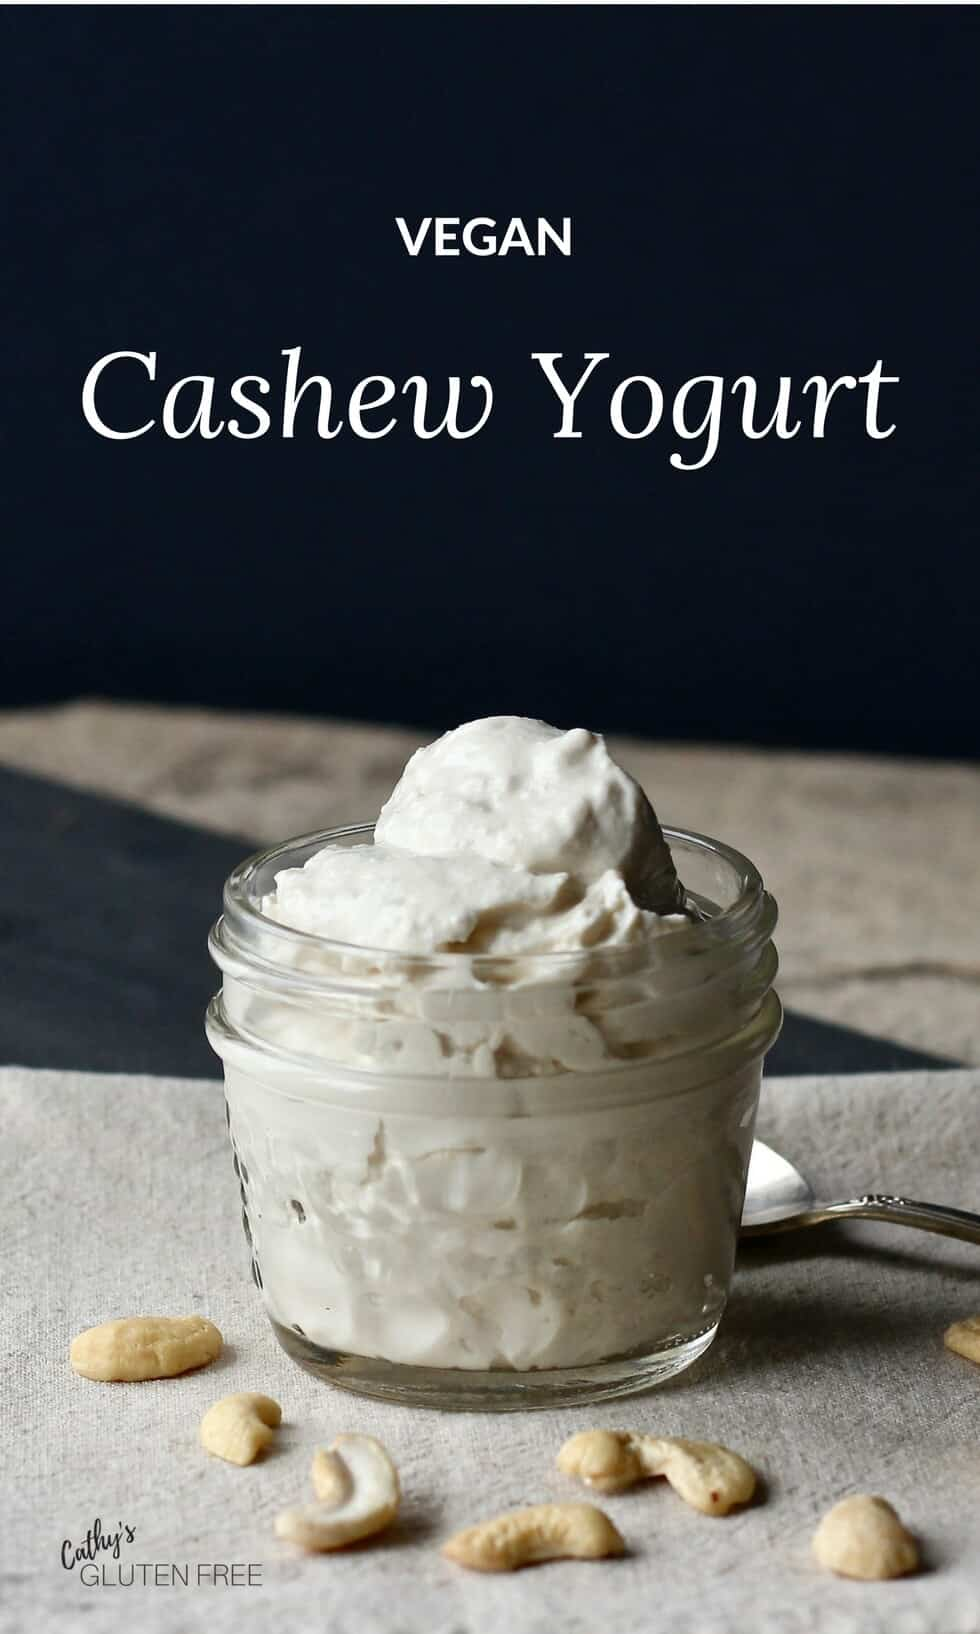 Vegan Cashew Yogurt